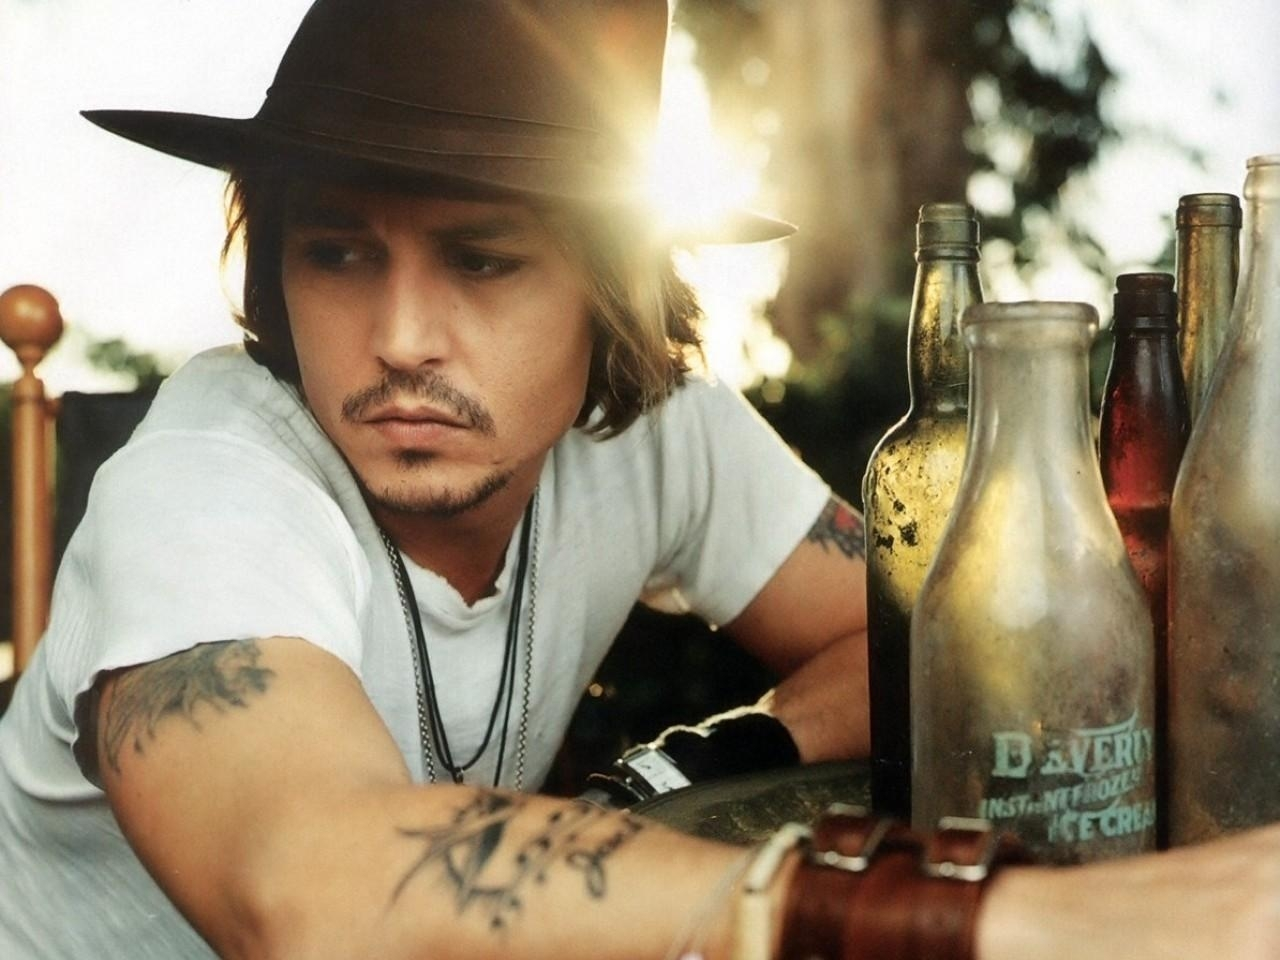 40511 download wallpaper People, Actors, Men, Johnny Depp screensavers and pictures for free